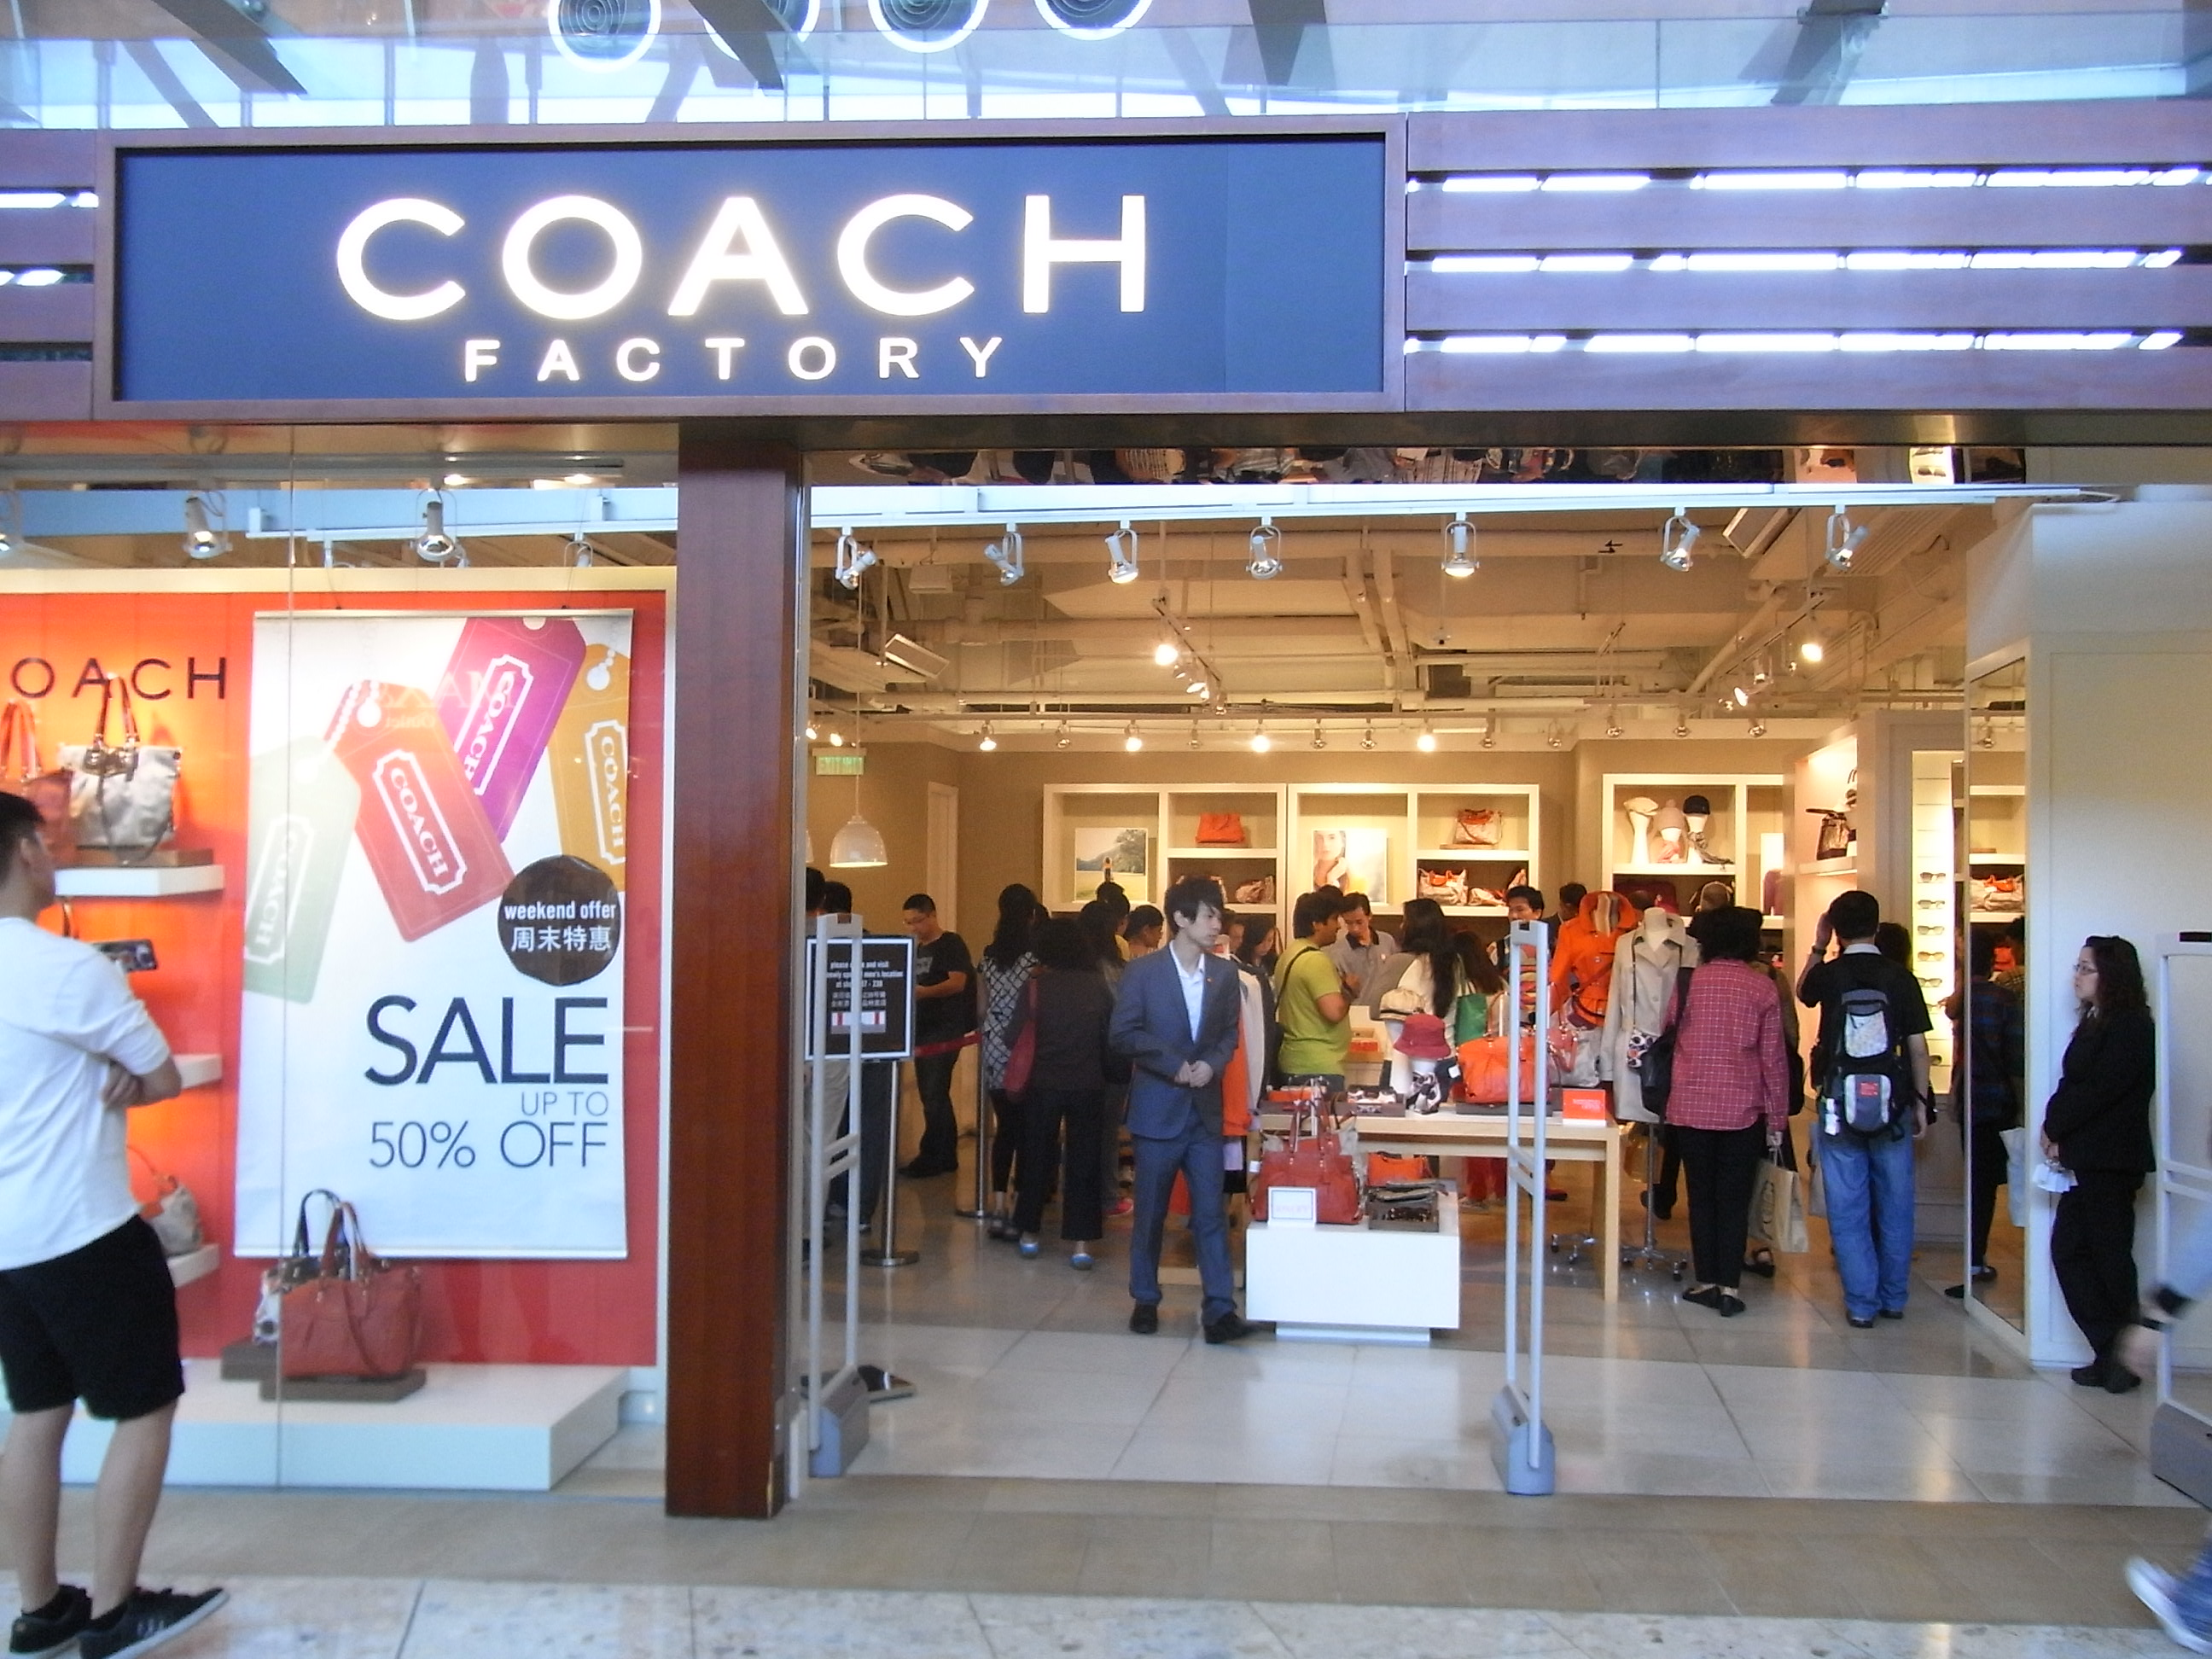 File:HK Tung Chung CityGate Outlets shop COACH Factory Oct-2012.JPG